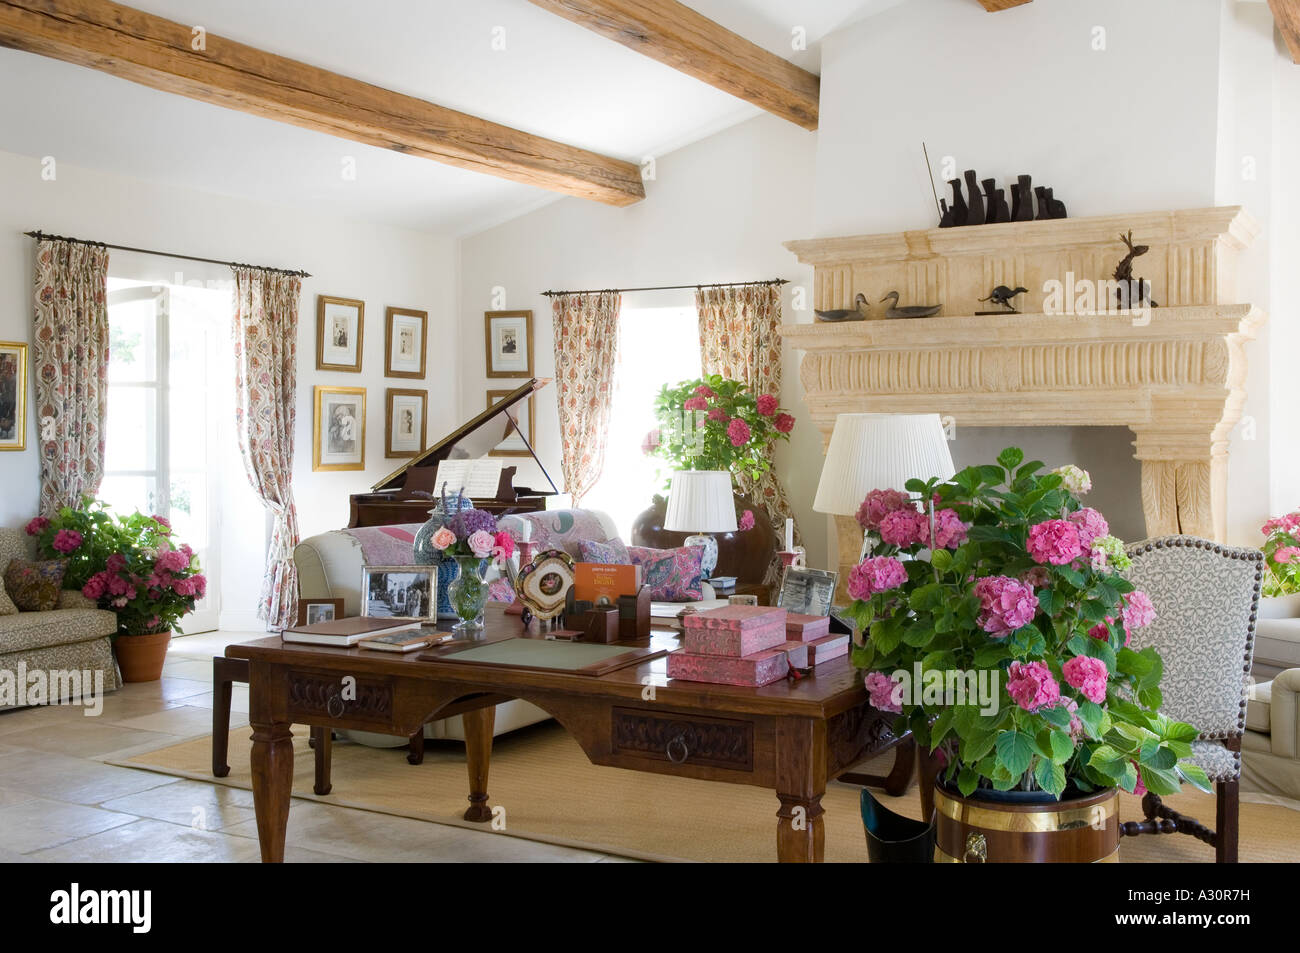 Houseplant and desk in beamed living room with stone fireplace Stock Photo